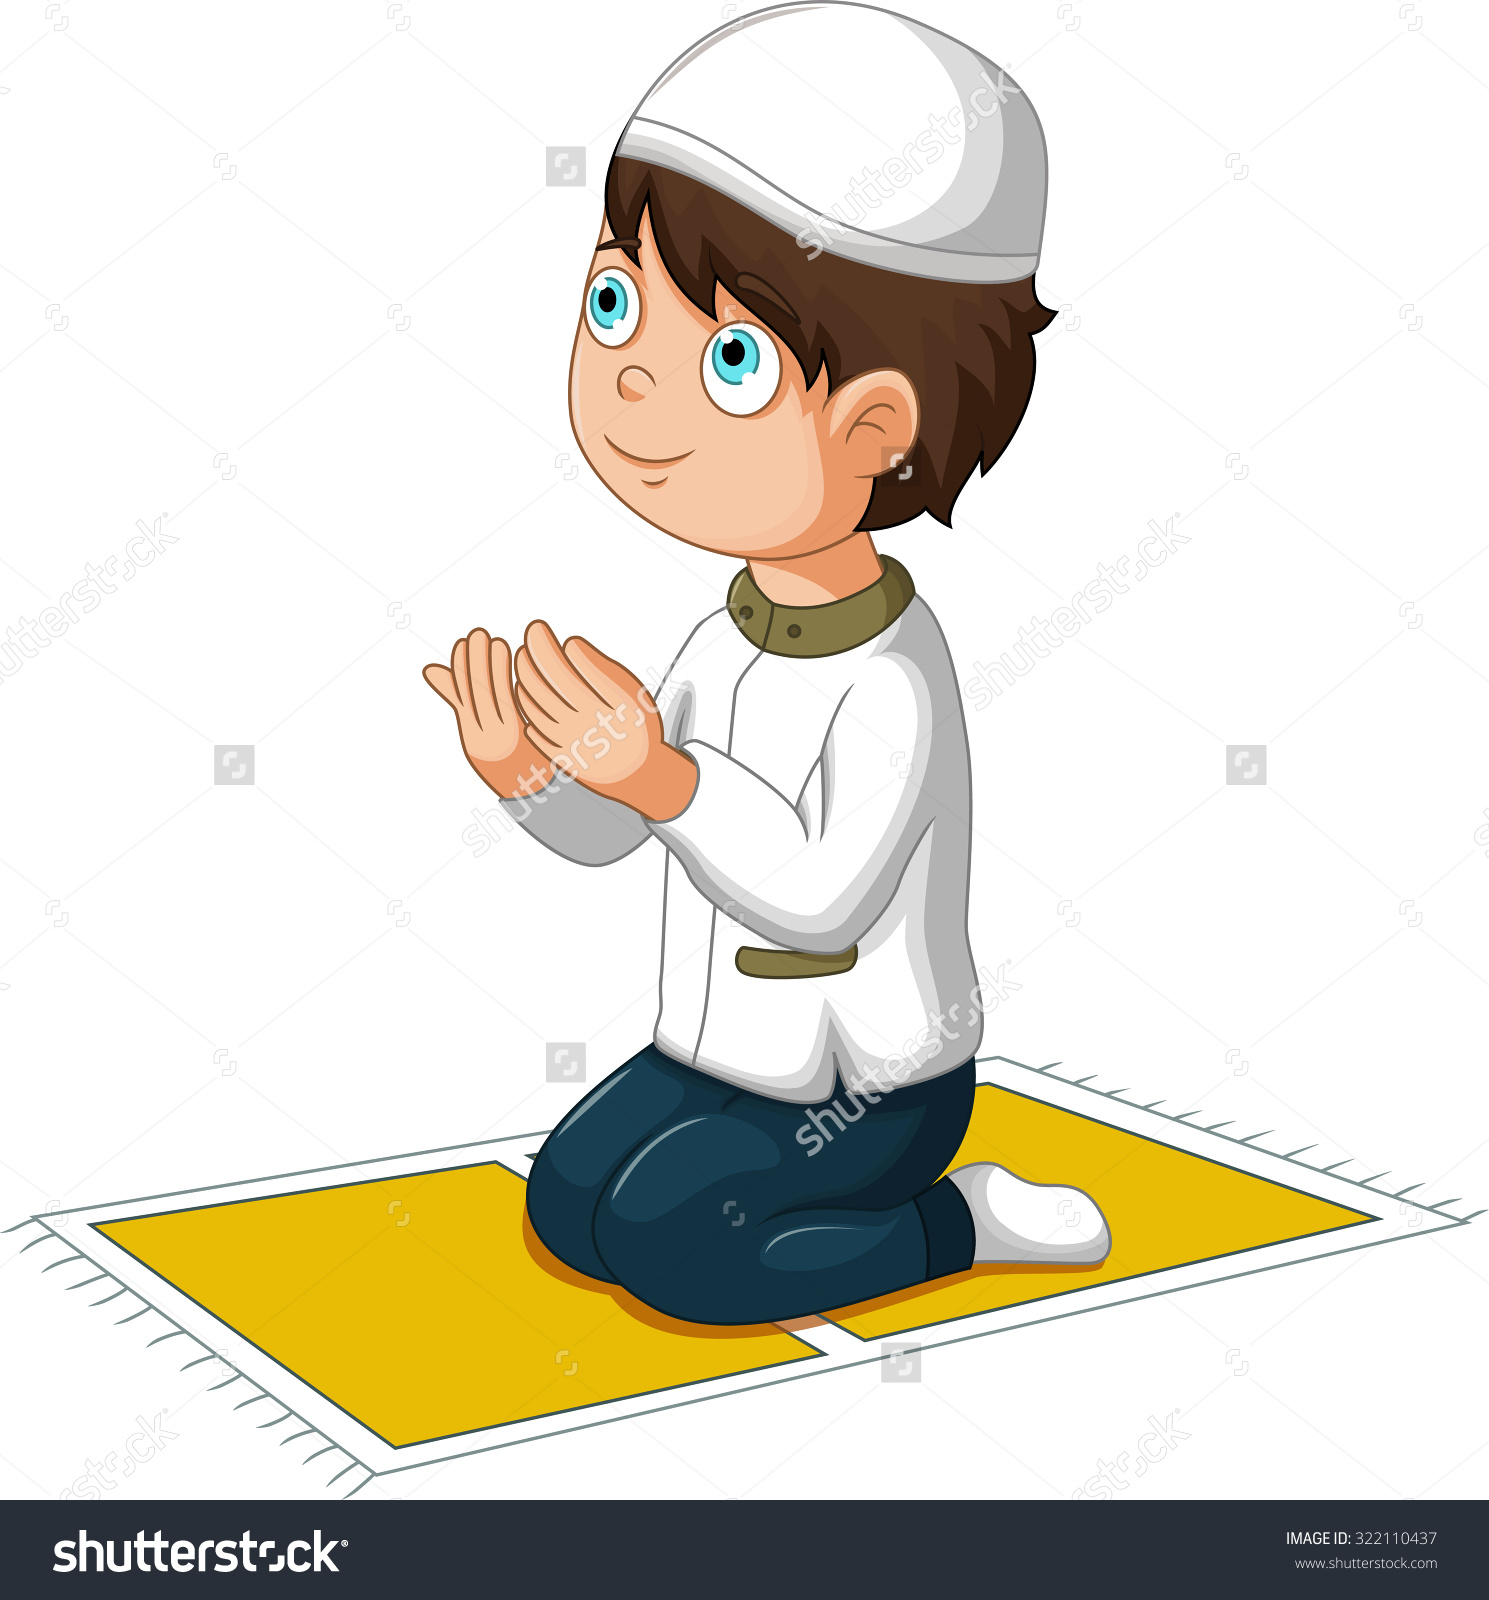 Get well prayer cartoons for kids clipart.